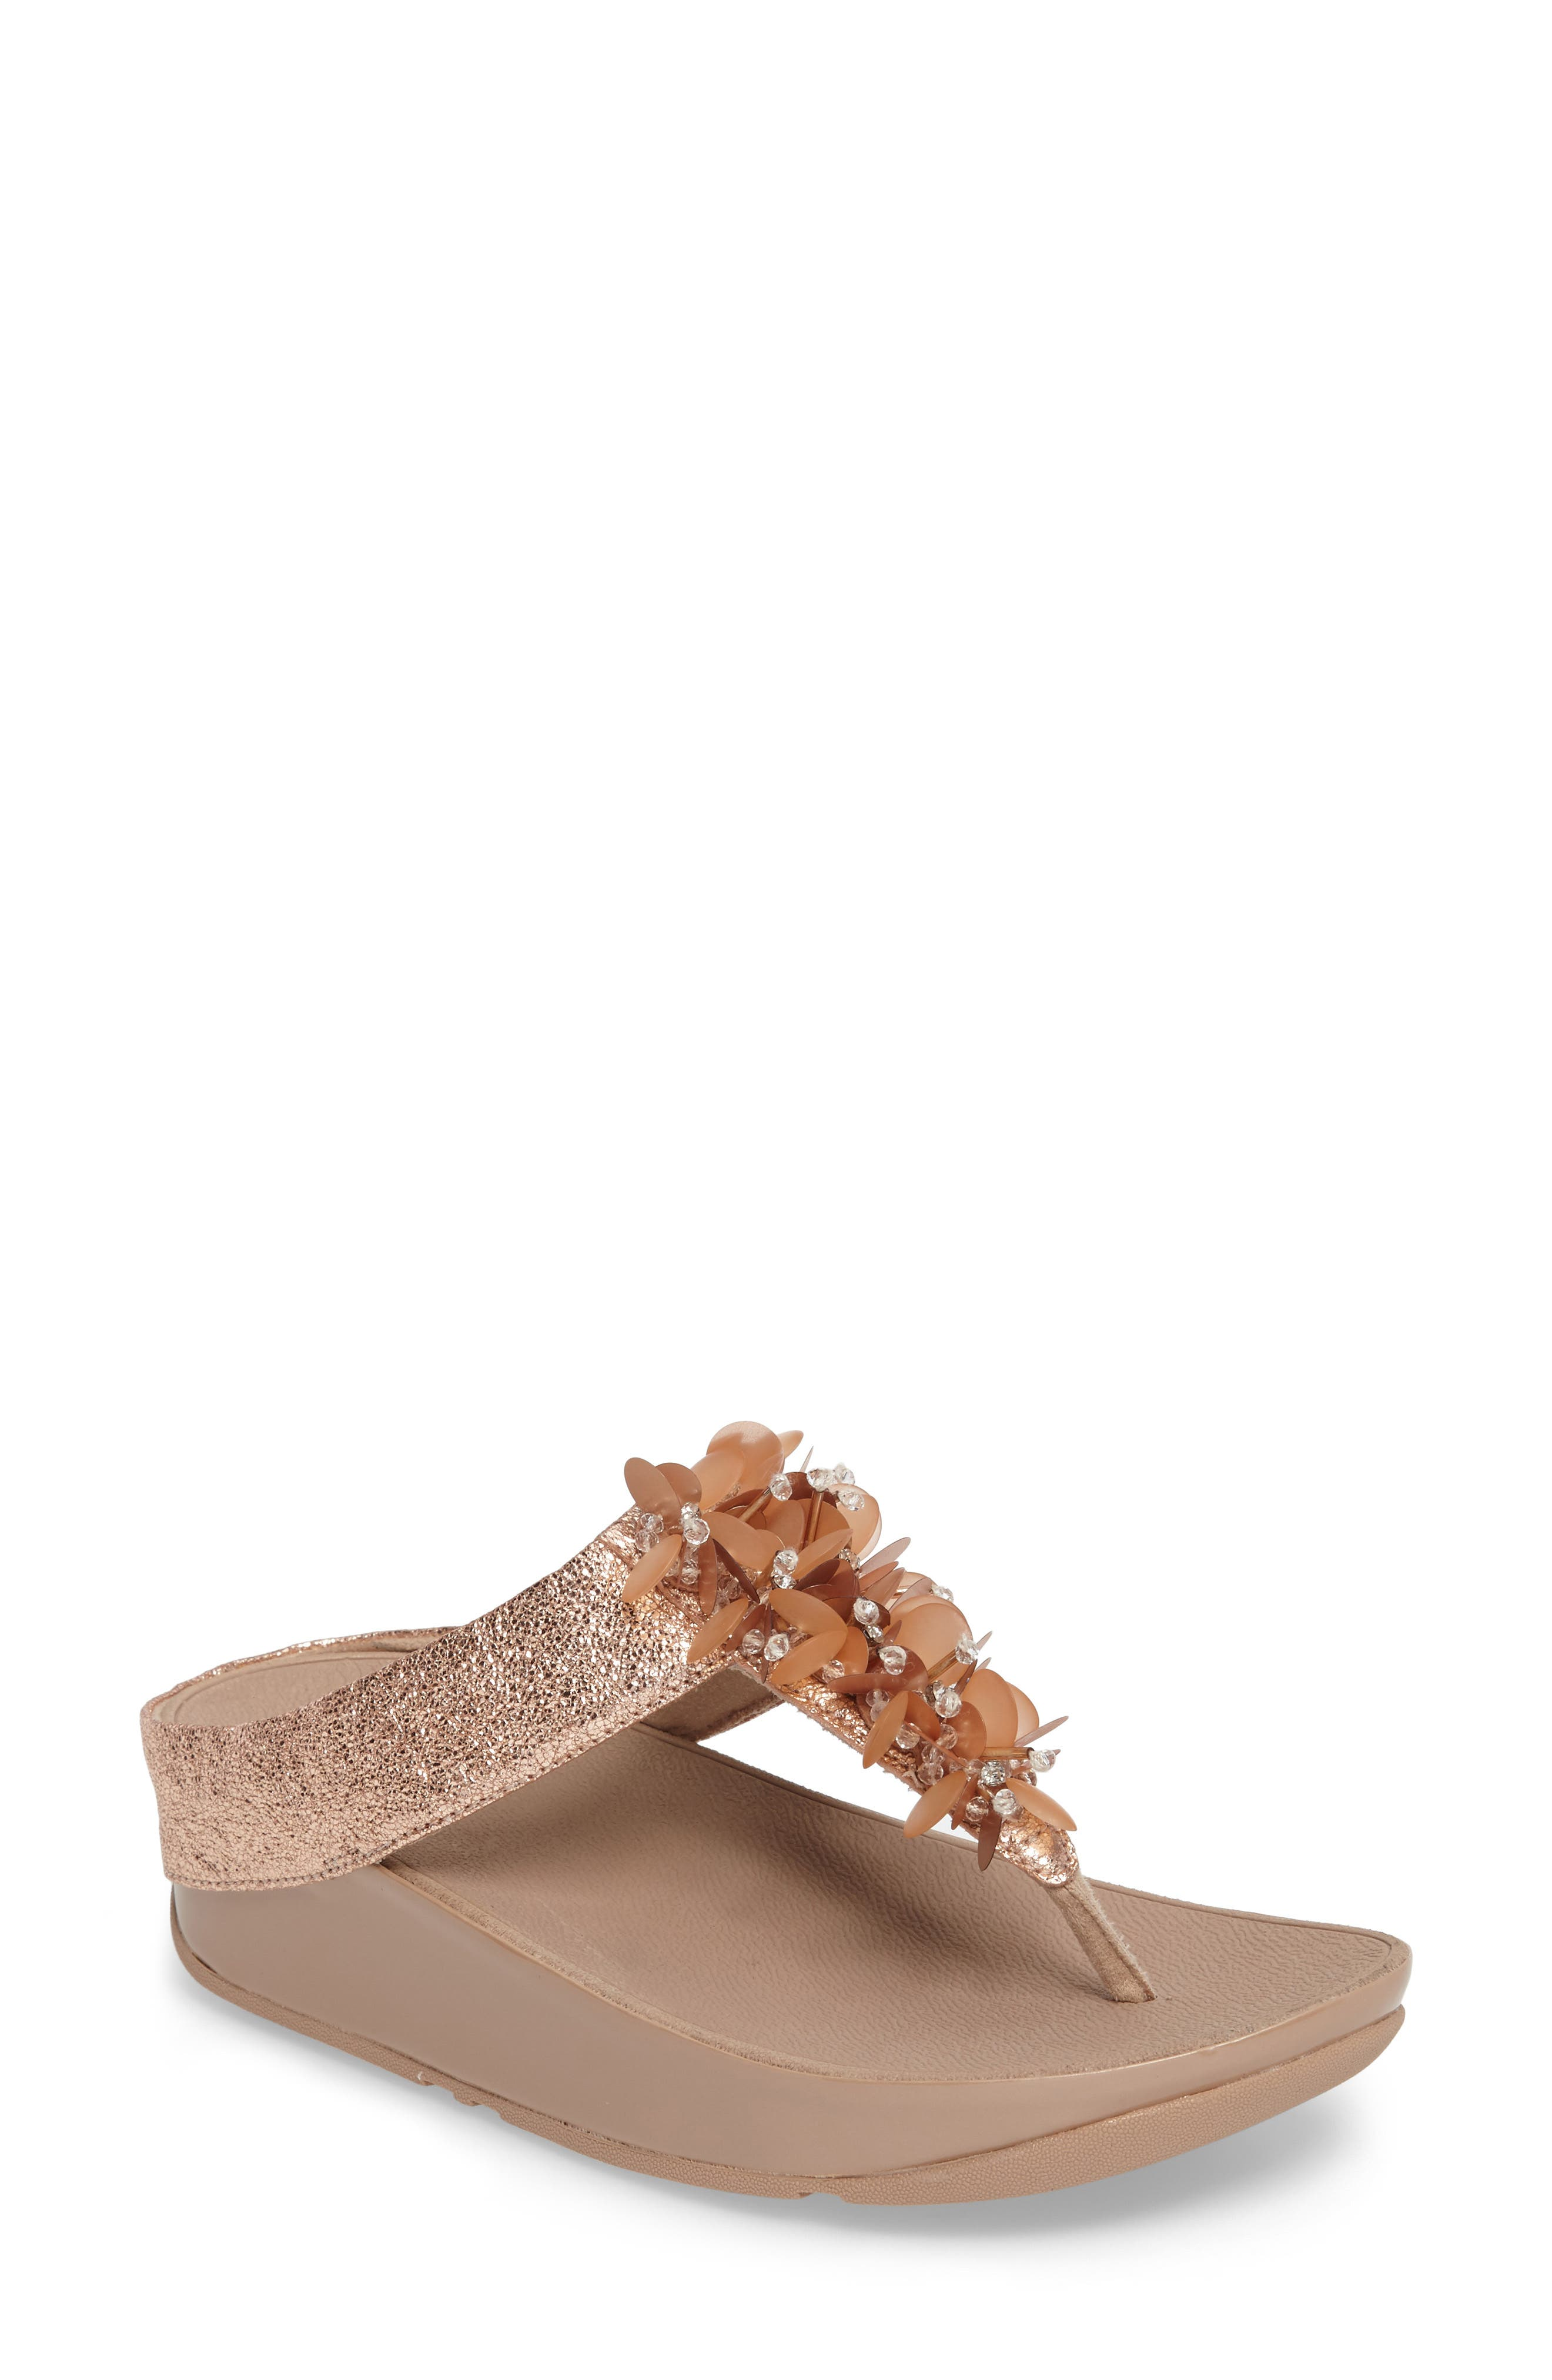 Boogaloo Sandal,                         Main,                         color, Rose Gold Leather